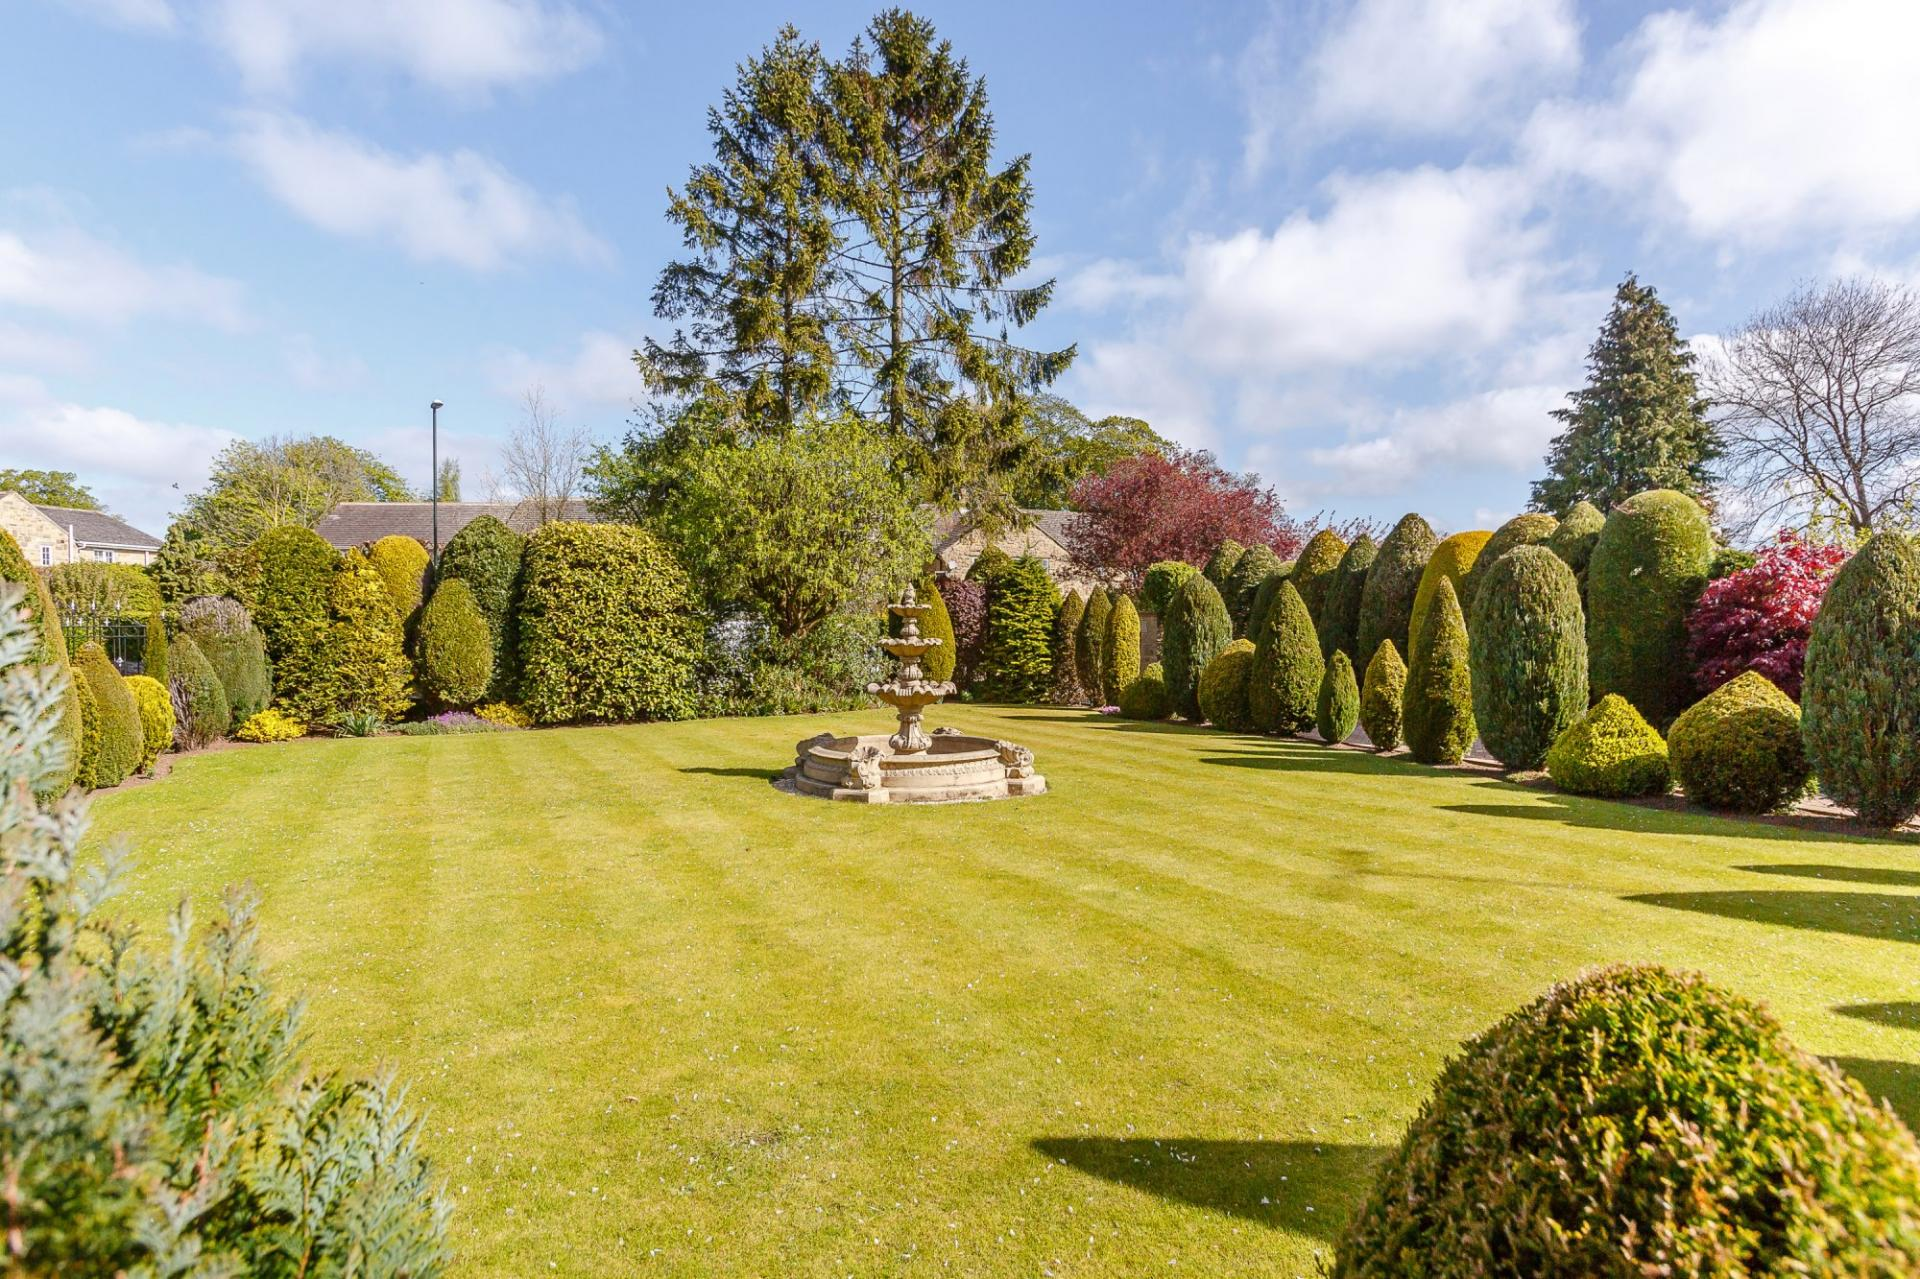 3 Bedroom Detached House For Sale In Wetherby